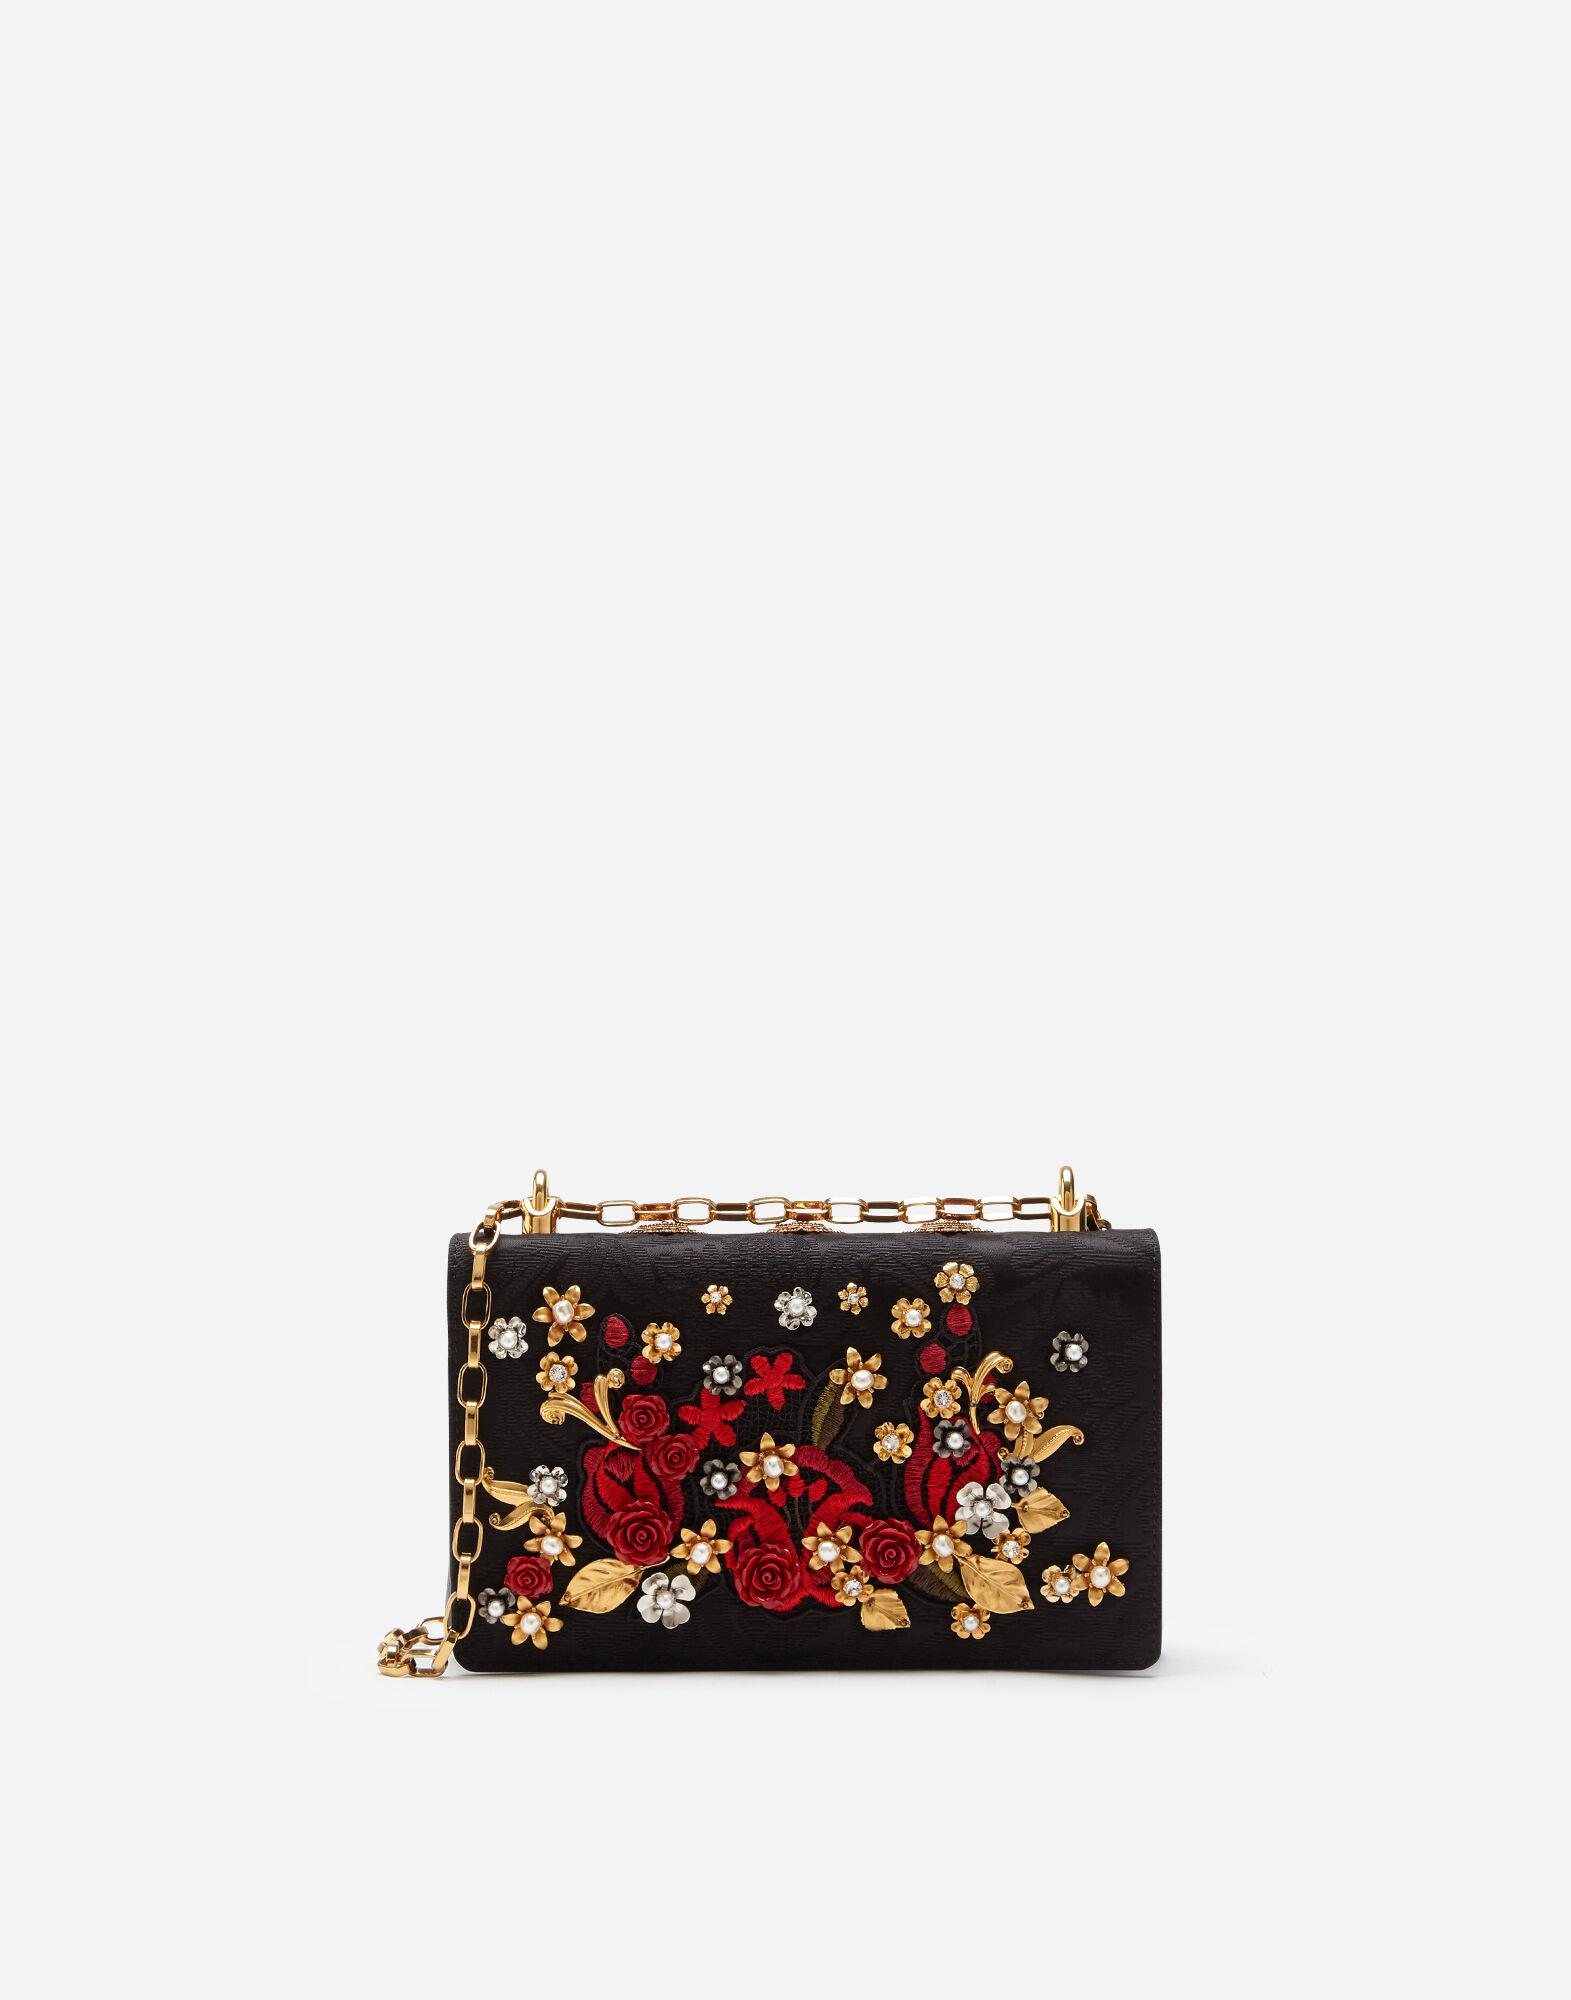 DG Girls cross-body bag in brocade with appliqués and embroidery